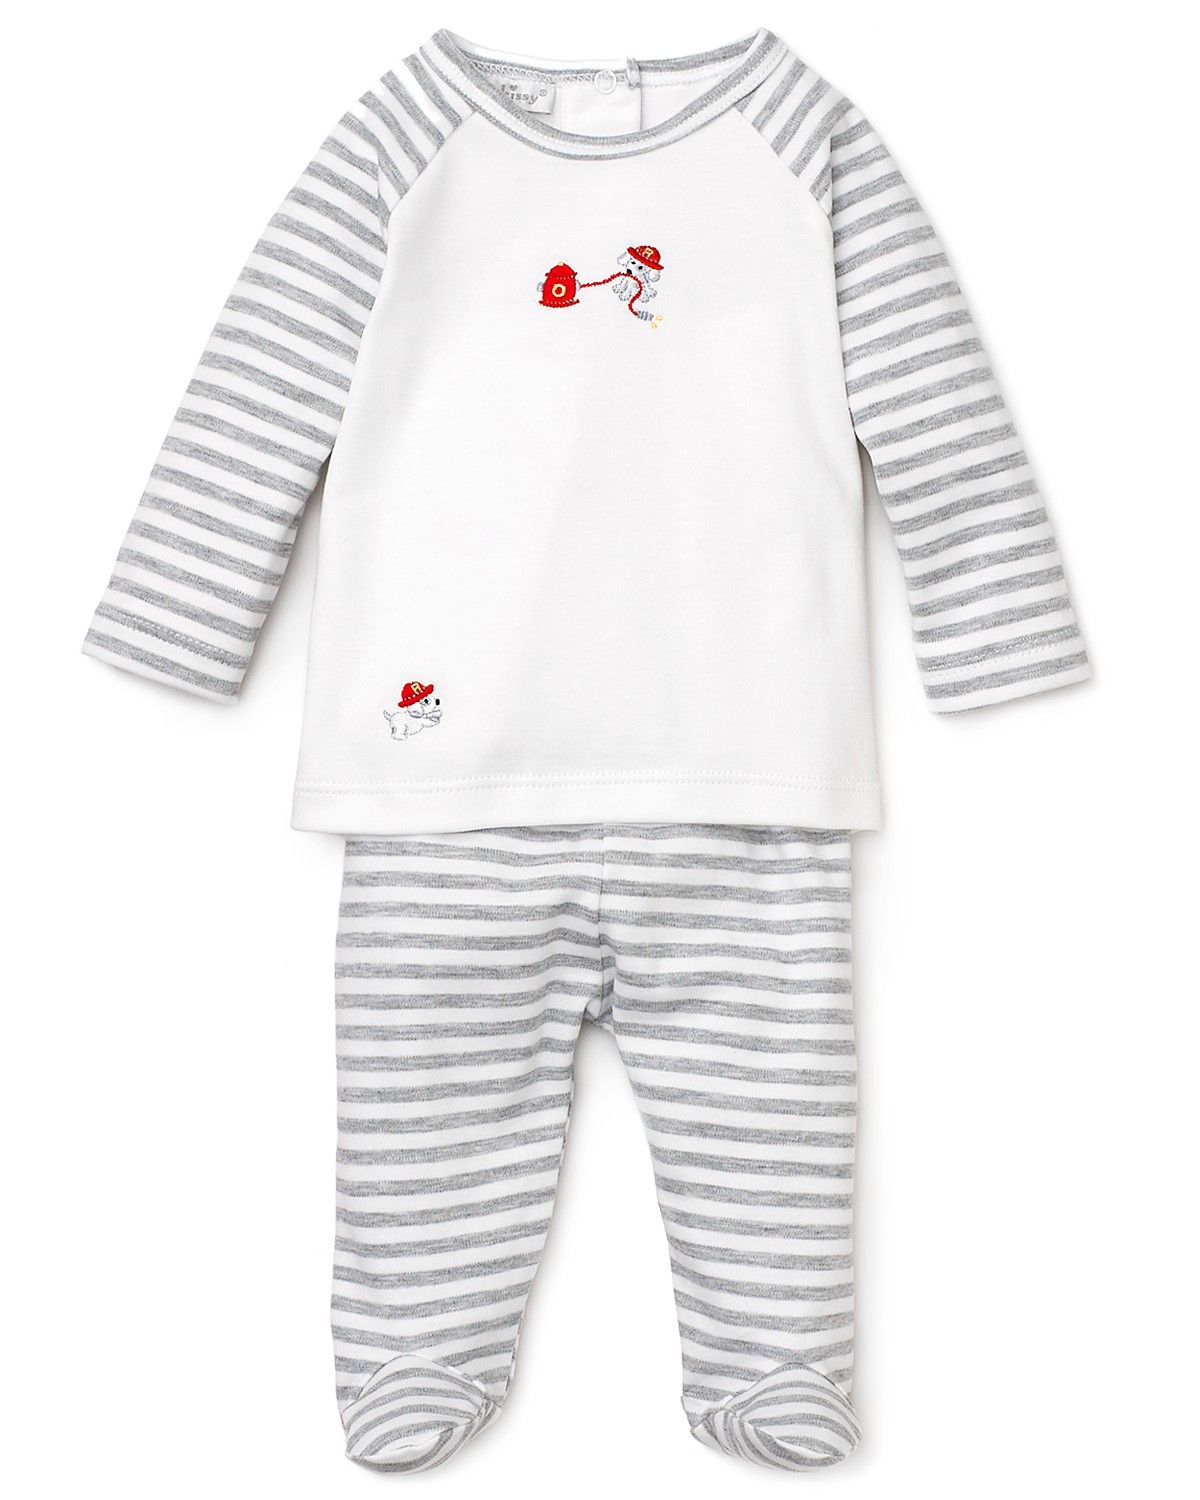 4d857ae6f391 Kissy Kissy Infant Boys  Striped Firefighter Dog Footed Pant Set - Sizes  0-9 Months